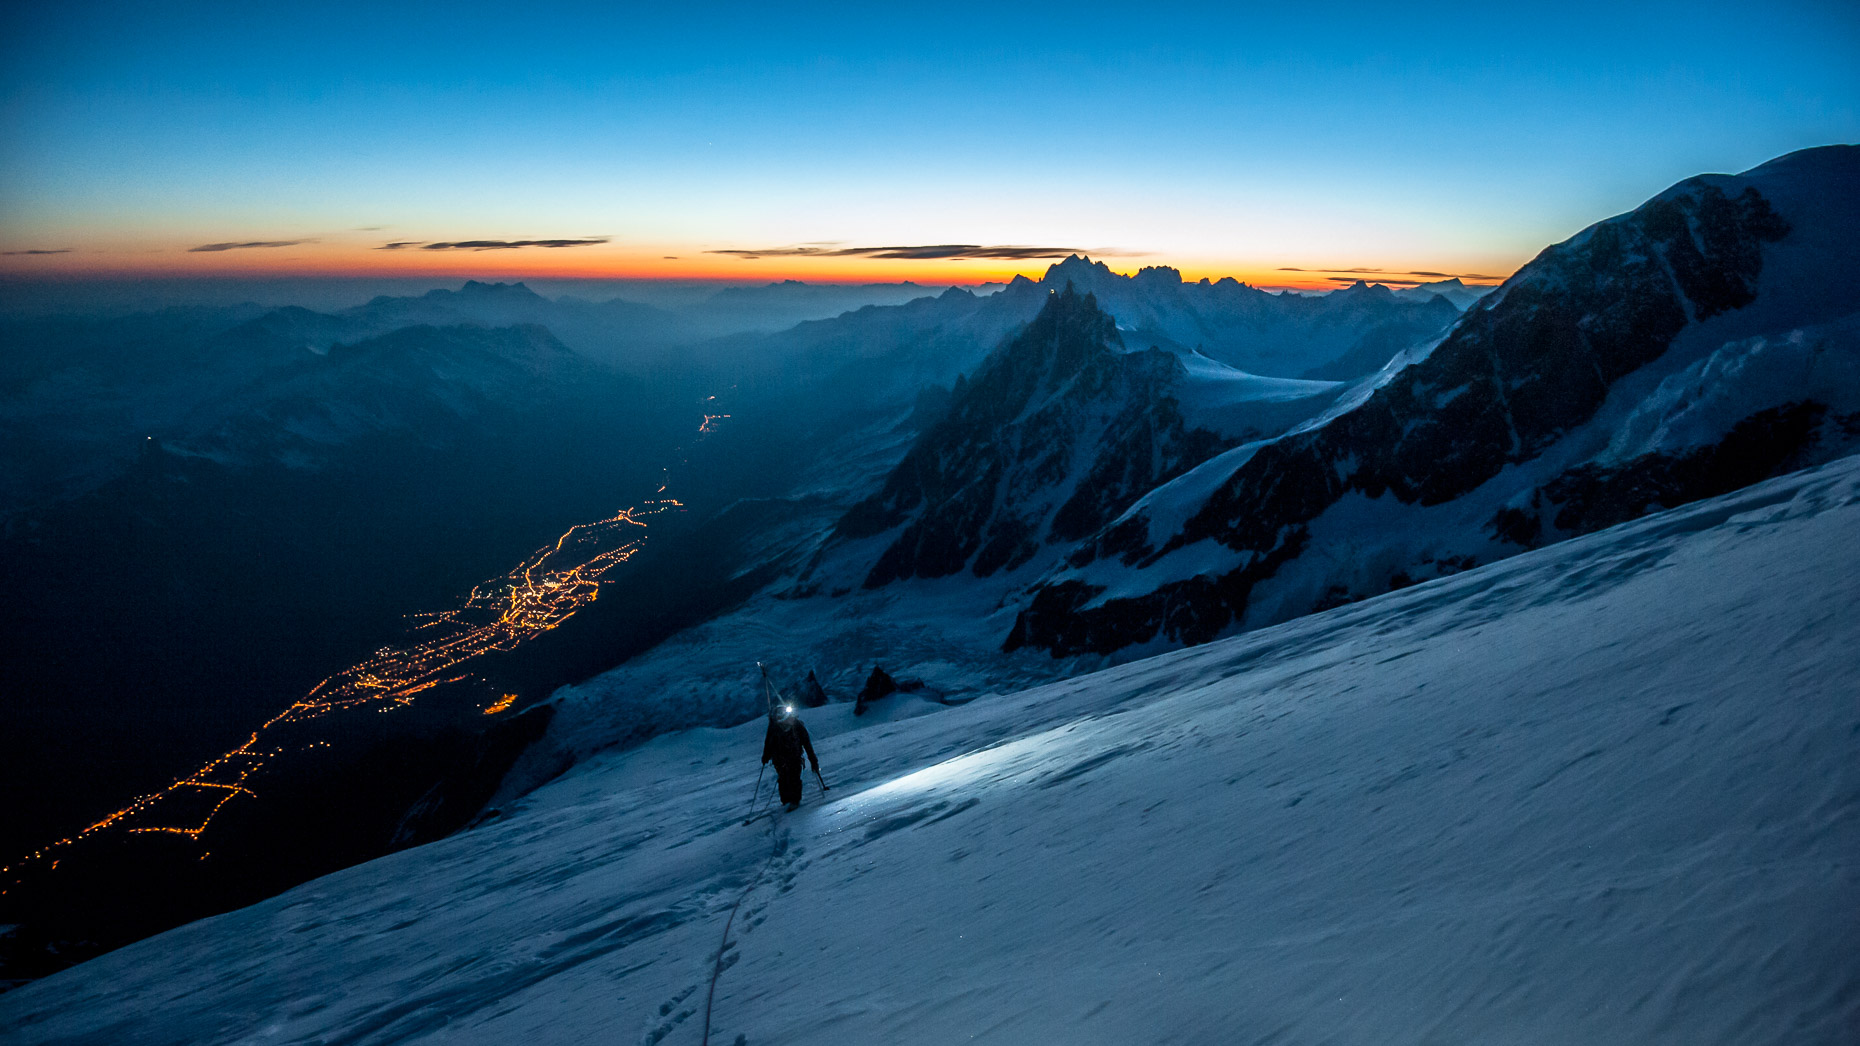 Chamonix Sunrise